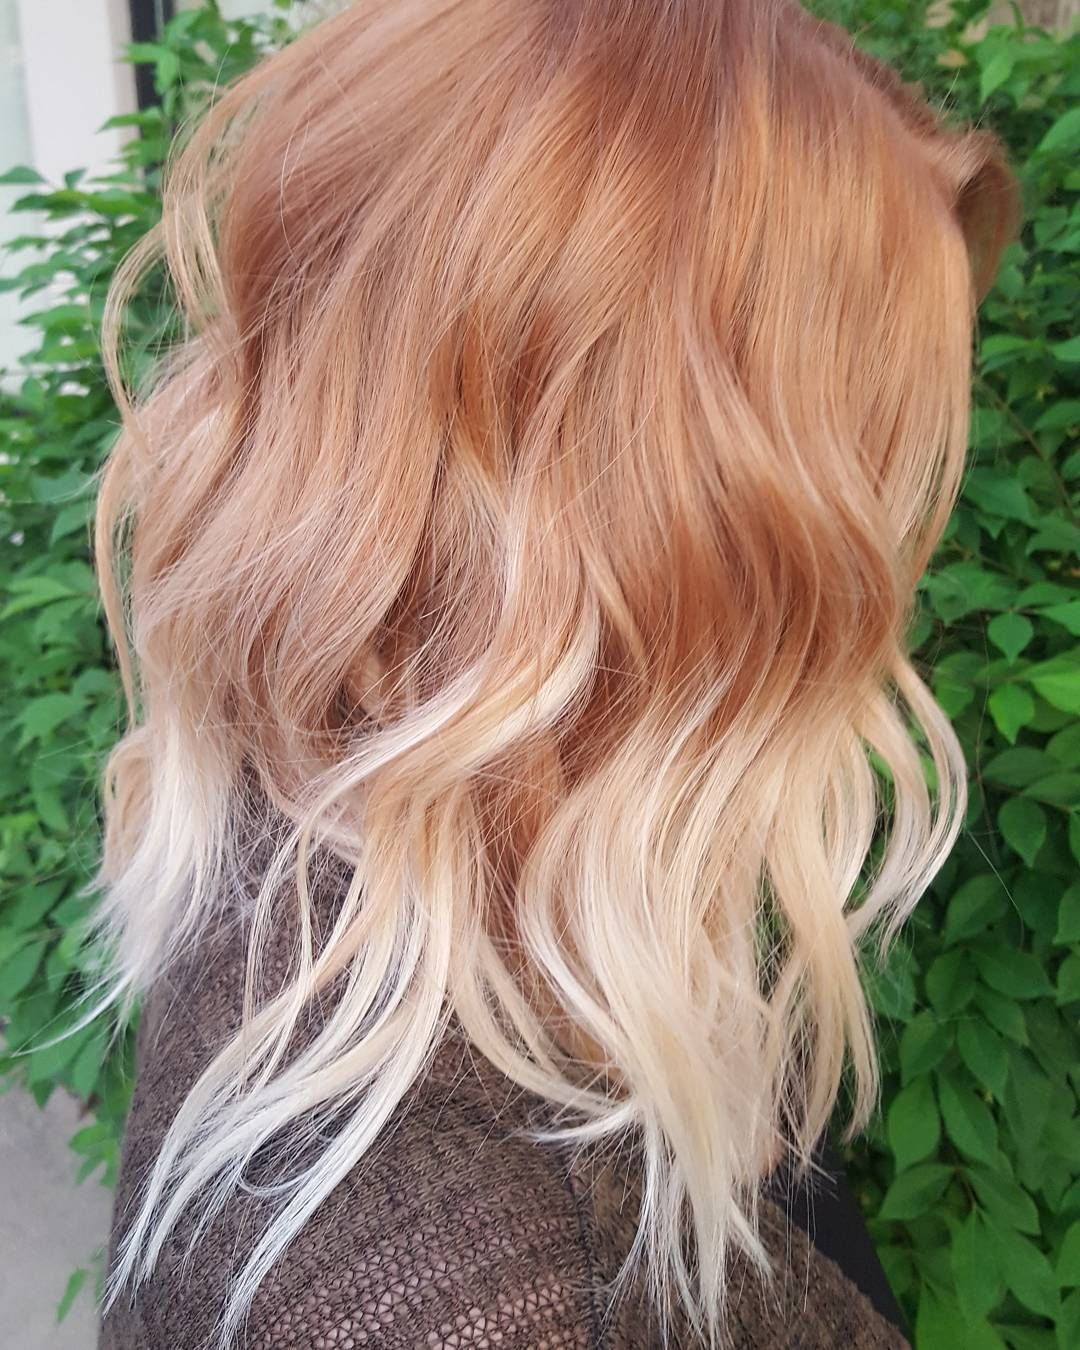 List Of Pinterest Red Blonde Hair Aesthetic Pictures